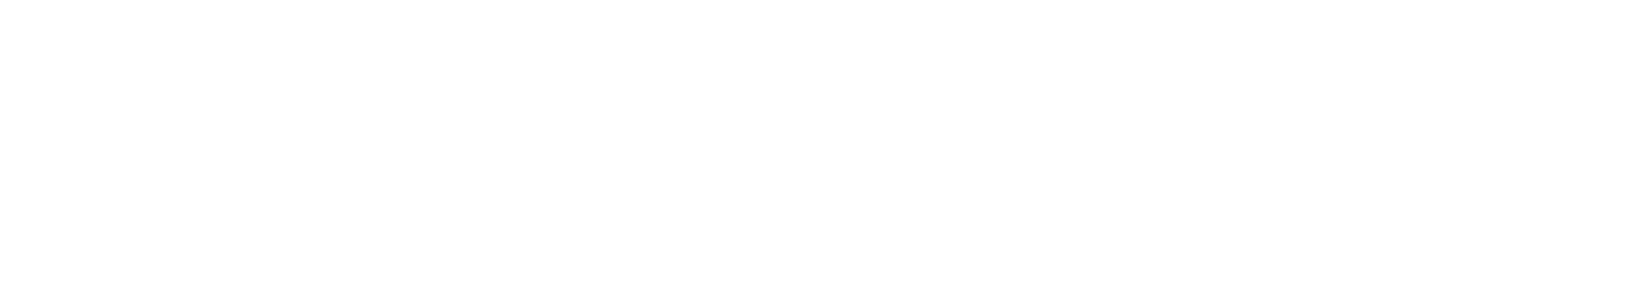 ArrMaz | Specialty Chemicals for Industries Worldwide